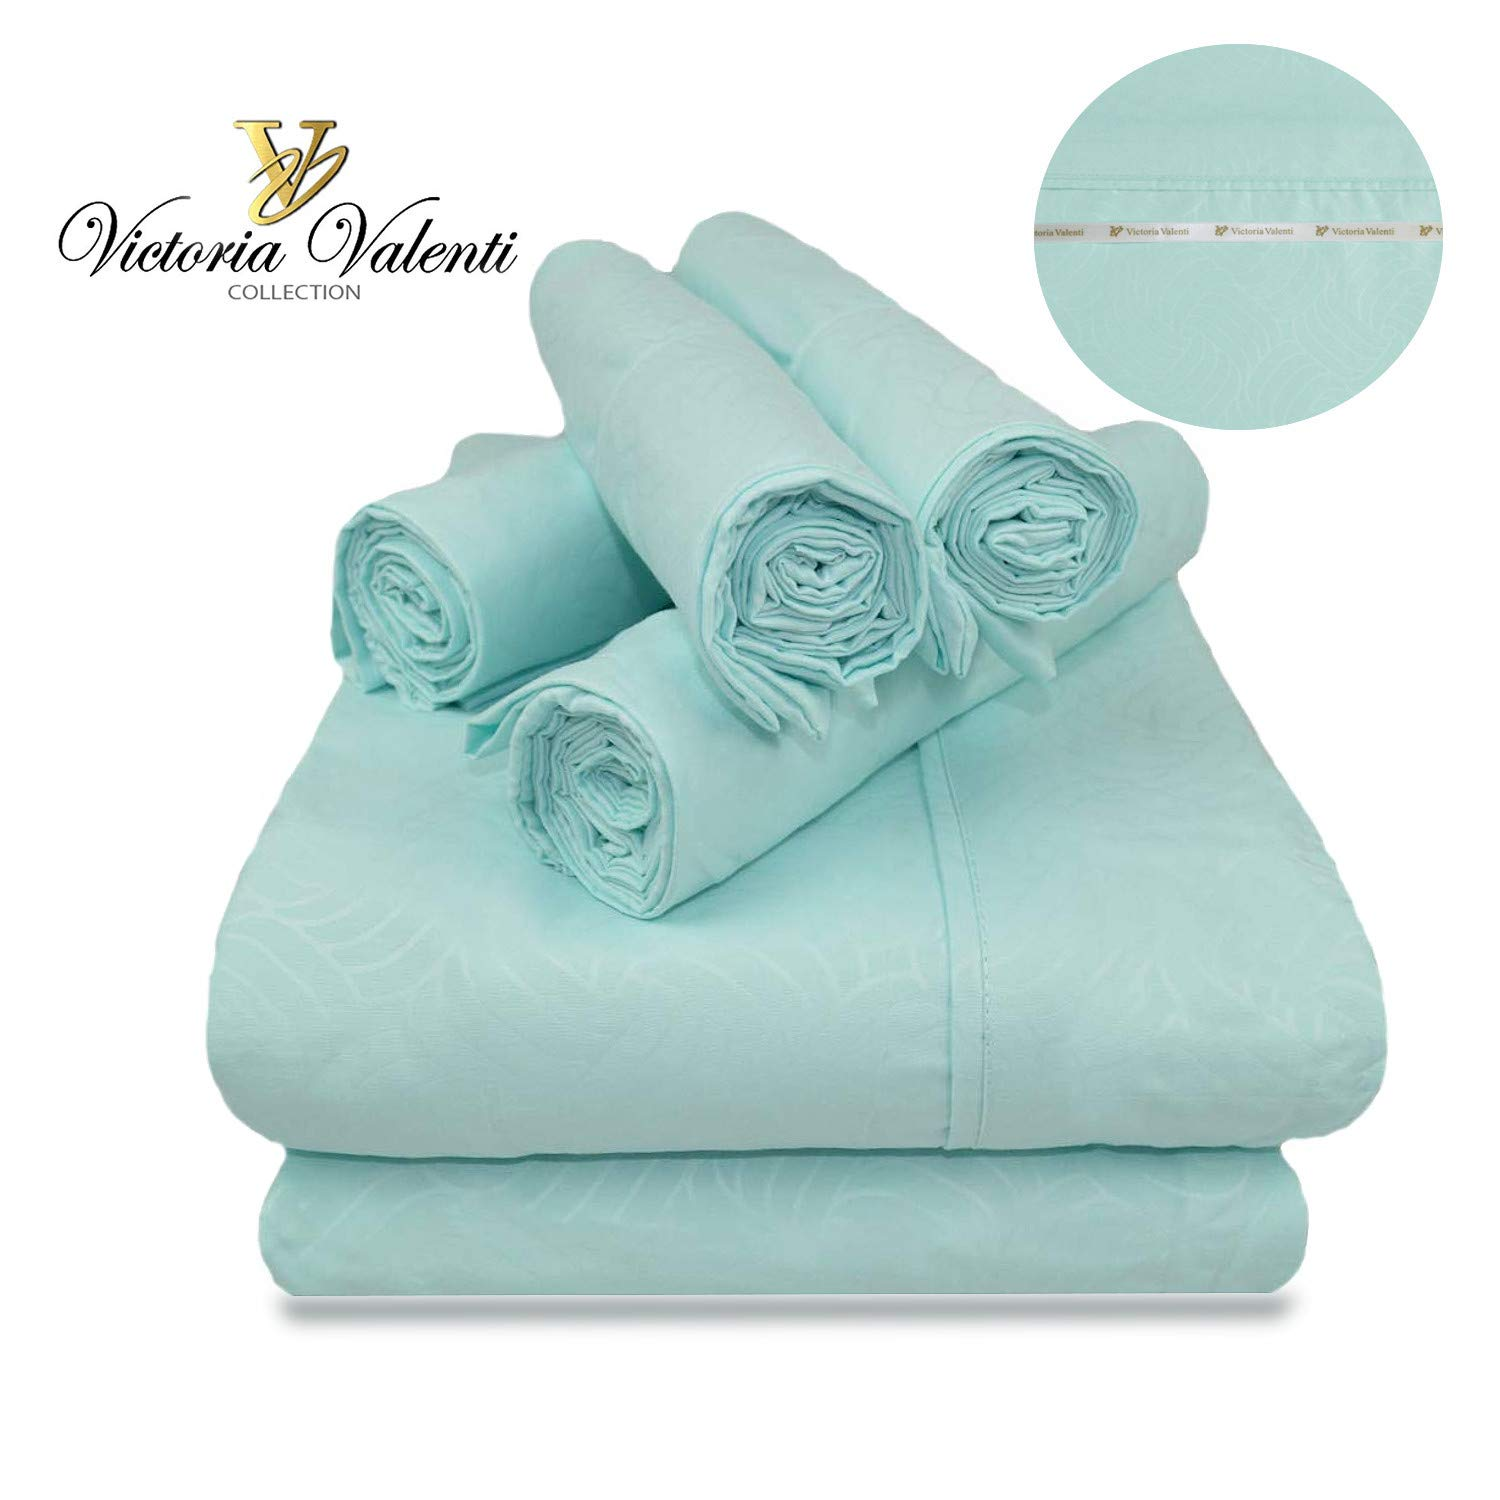 Victoria Valenti Embossed Sheet Set with 2 Pillow Cases, Double Brushed and Ultra Soft with Deep Pockets for Extra Deep Mattress, Microfiber, Hypoallergenic TW Aqua